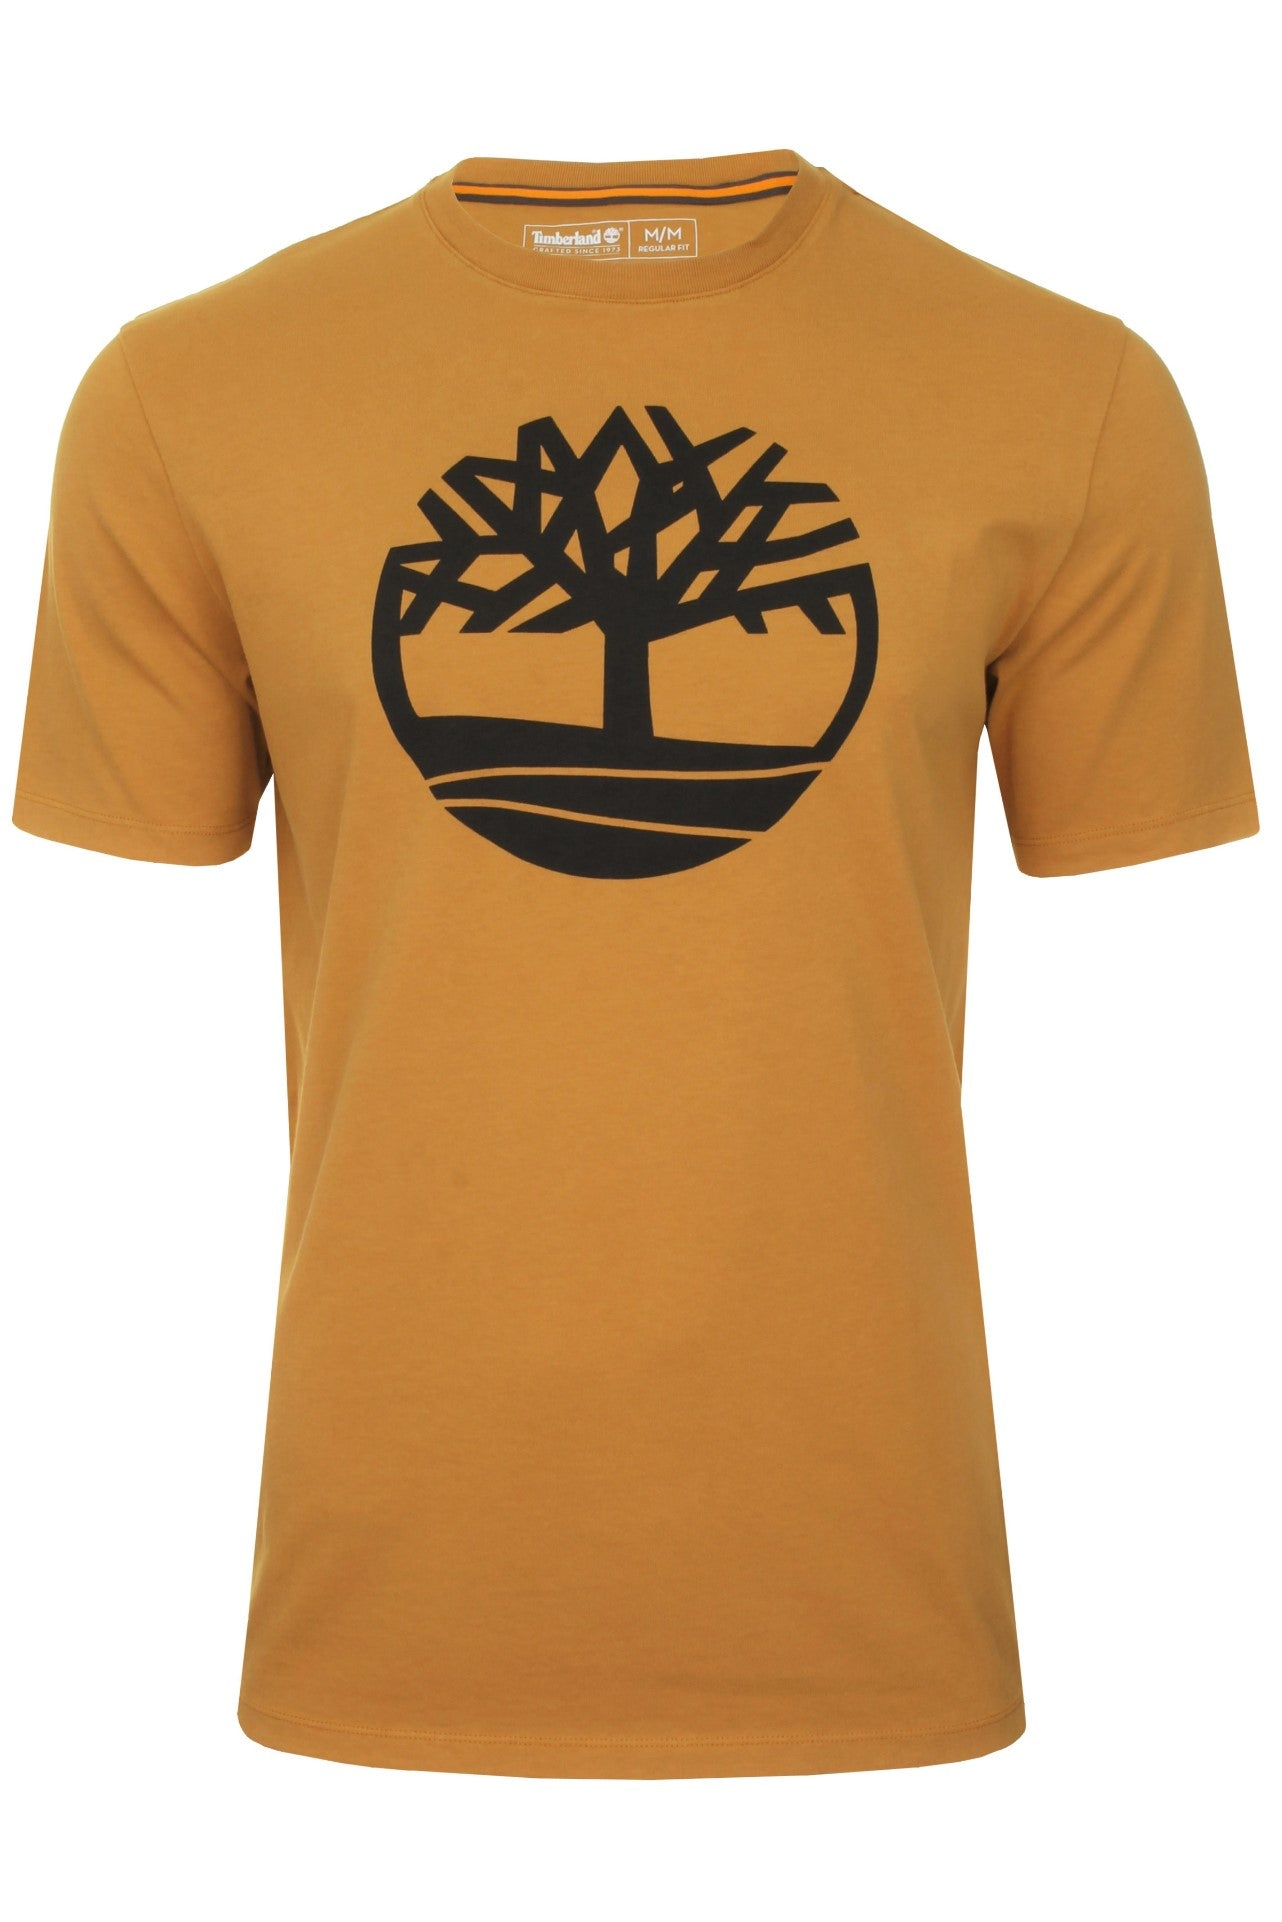 Timberland 'Kennebec River Tree Logo' T-Shirt - Short Sleeved_01_Tb0A2C2R_Wheat Boot